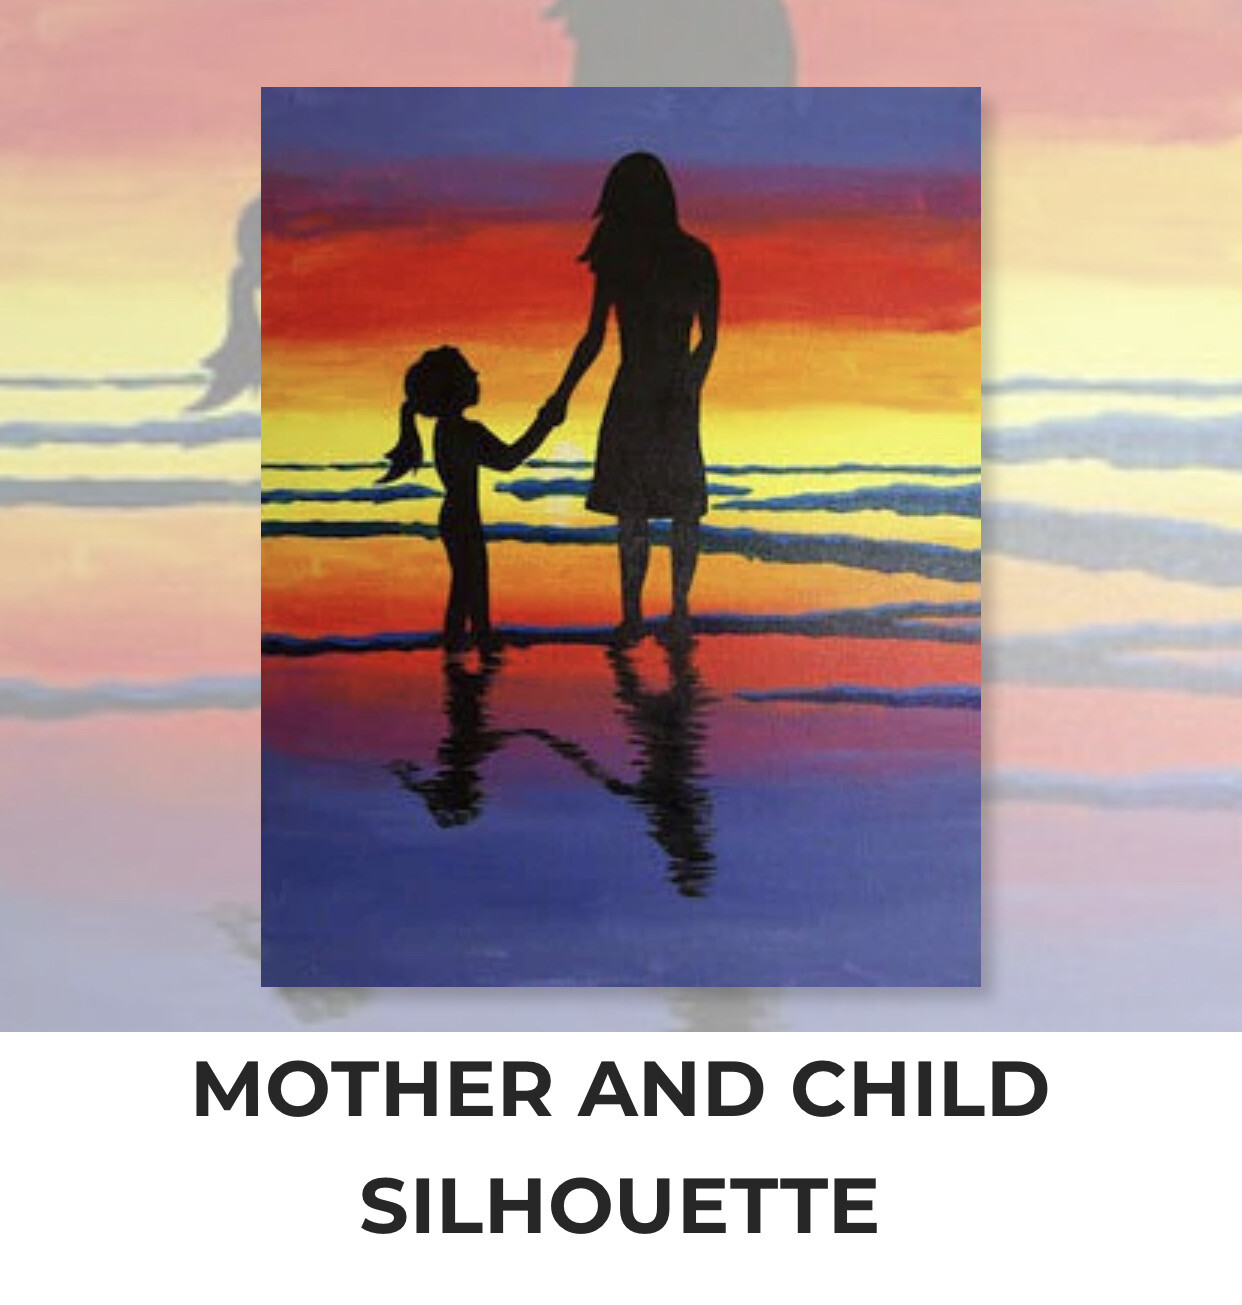 Mother and Child Silhouette ADULT Acrylic Paint On Canvas DIY Art Kit